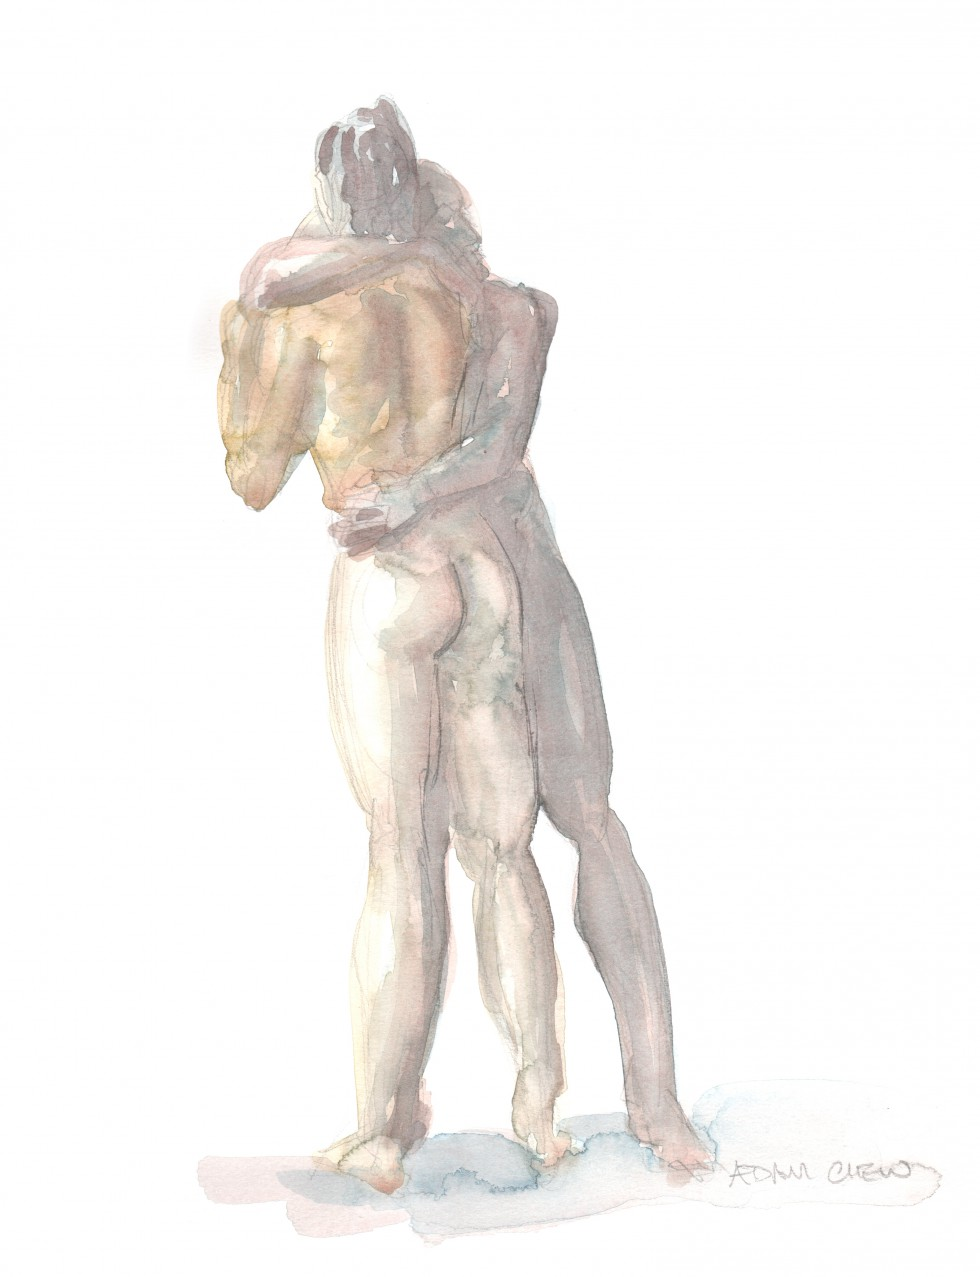 embrace - Adam Chew, 2014